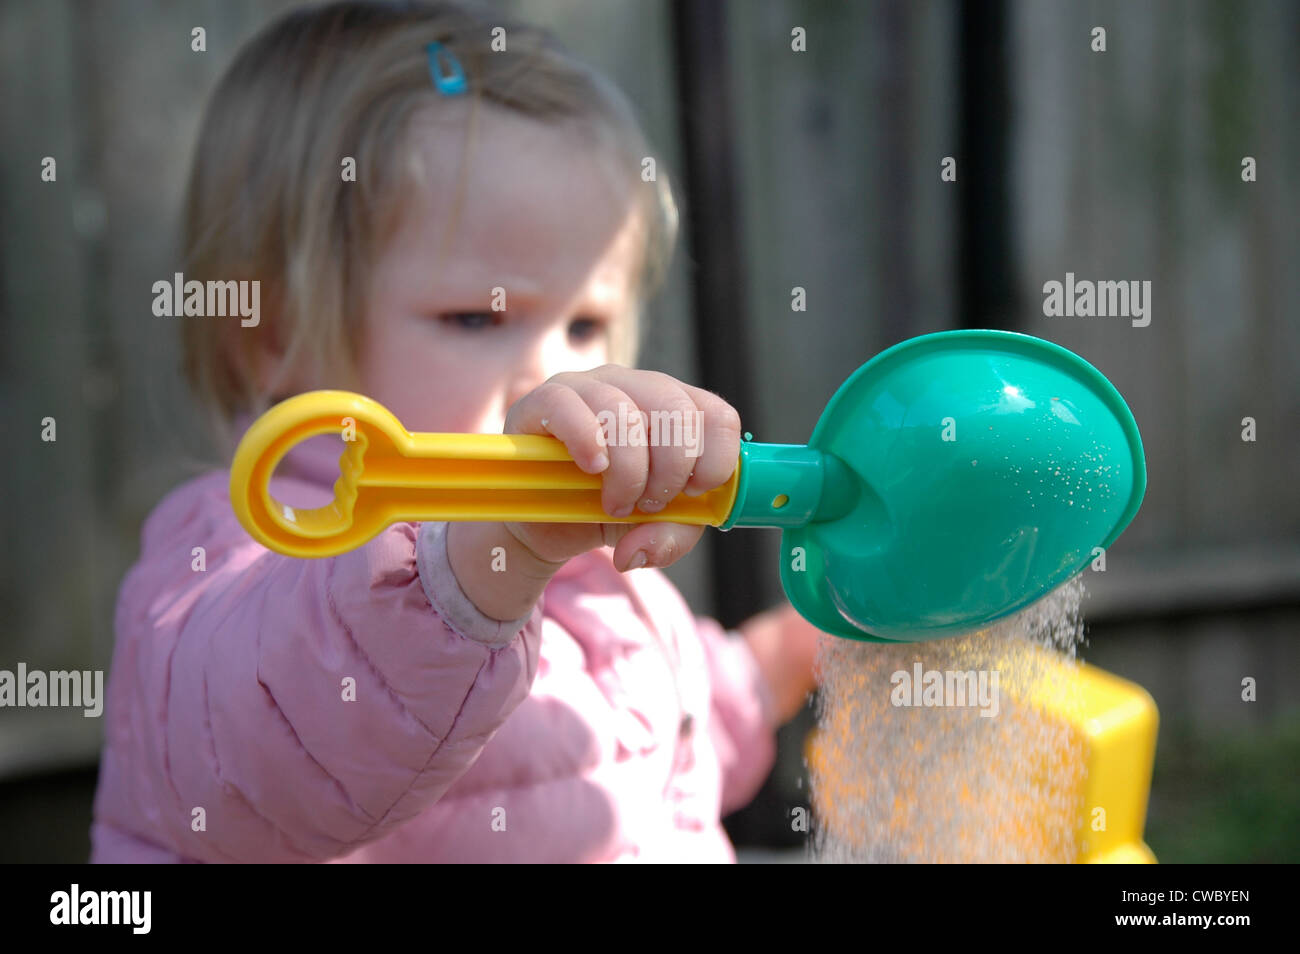 Toddler Plays In Sandbox Stock Photo